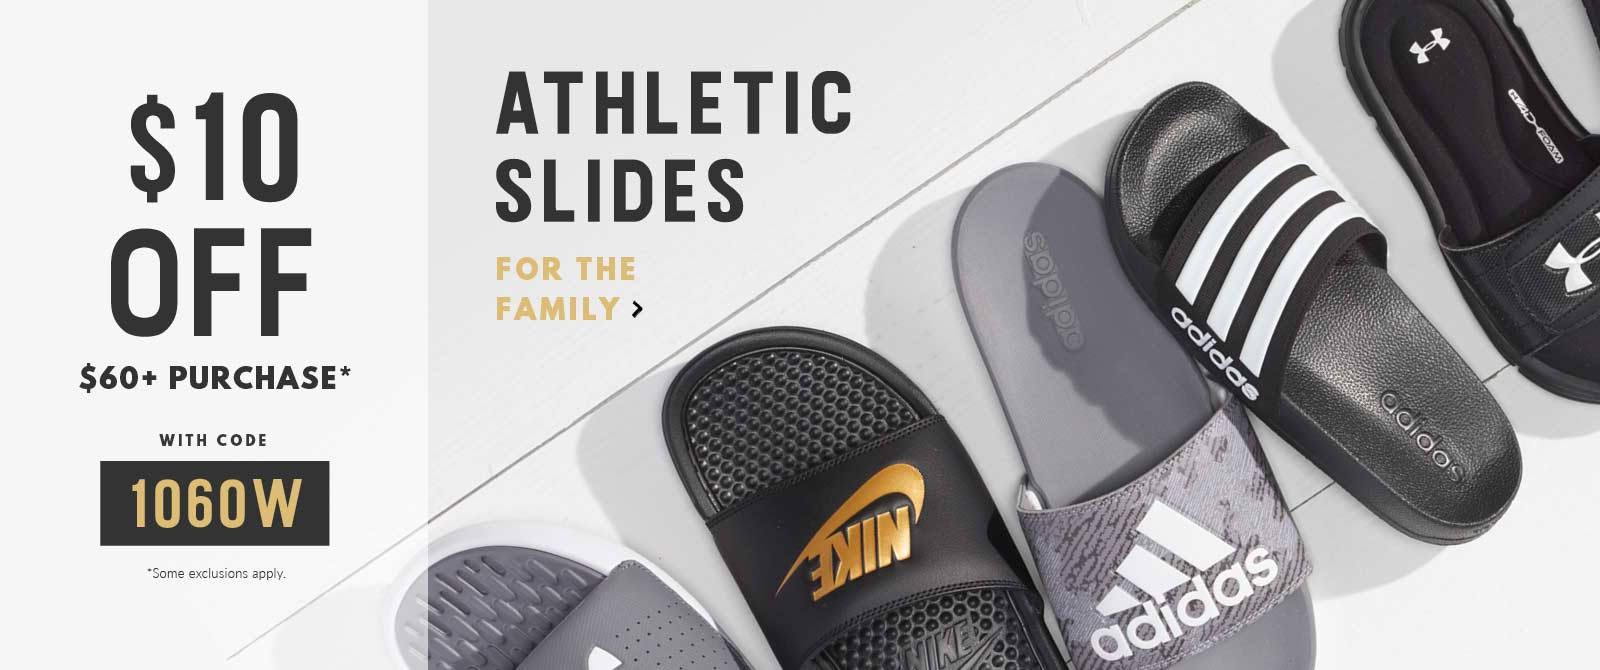 Shop athletic slides for the family